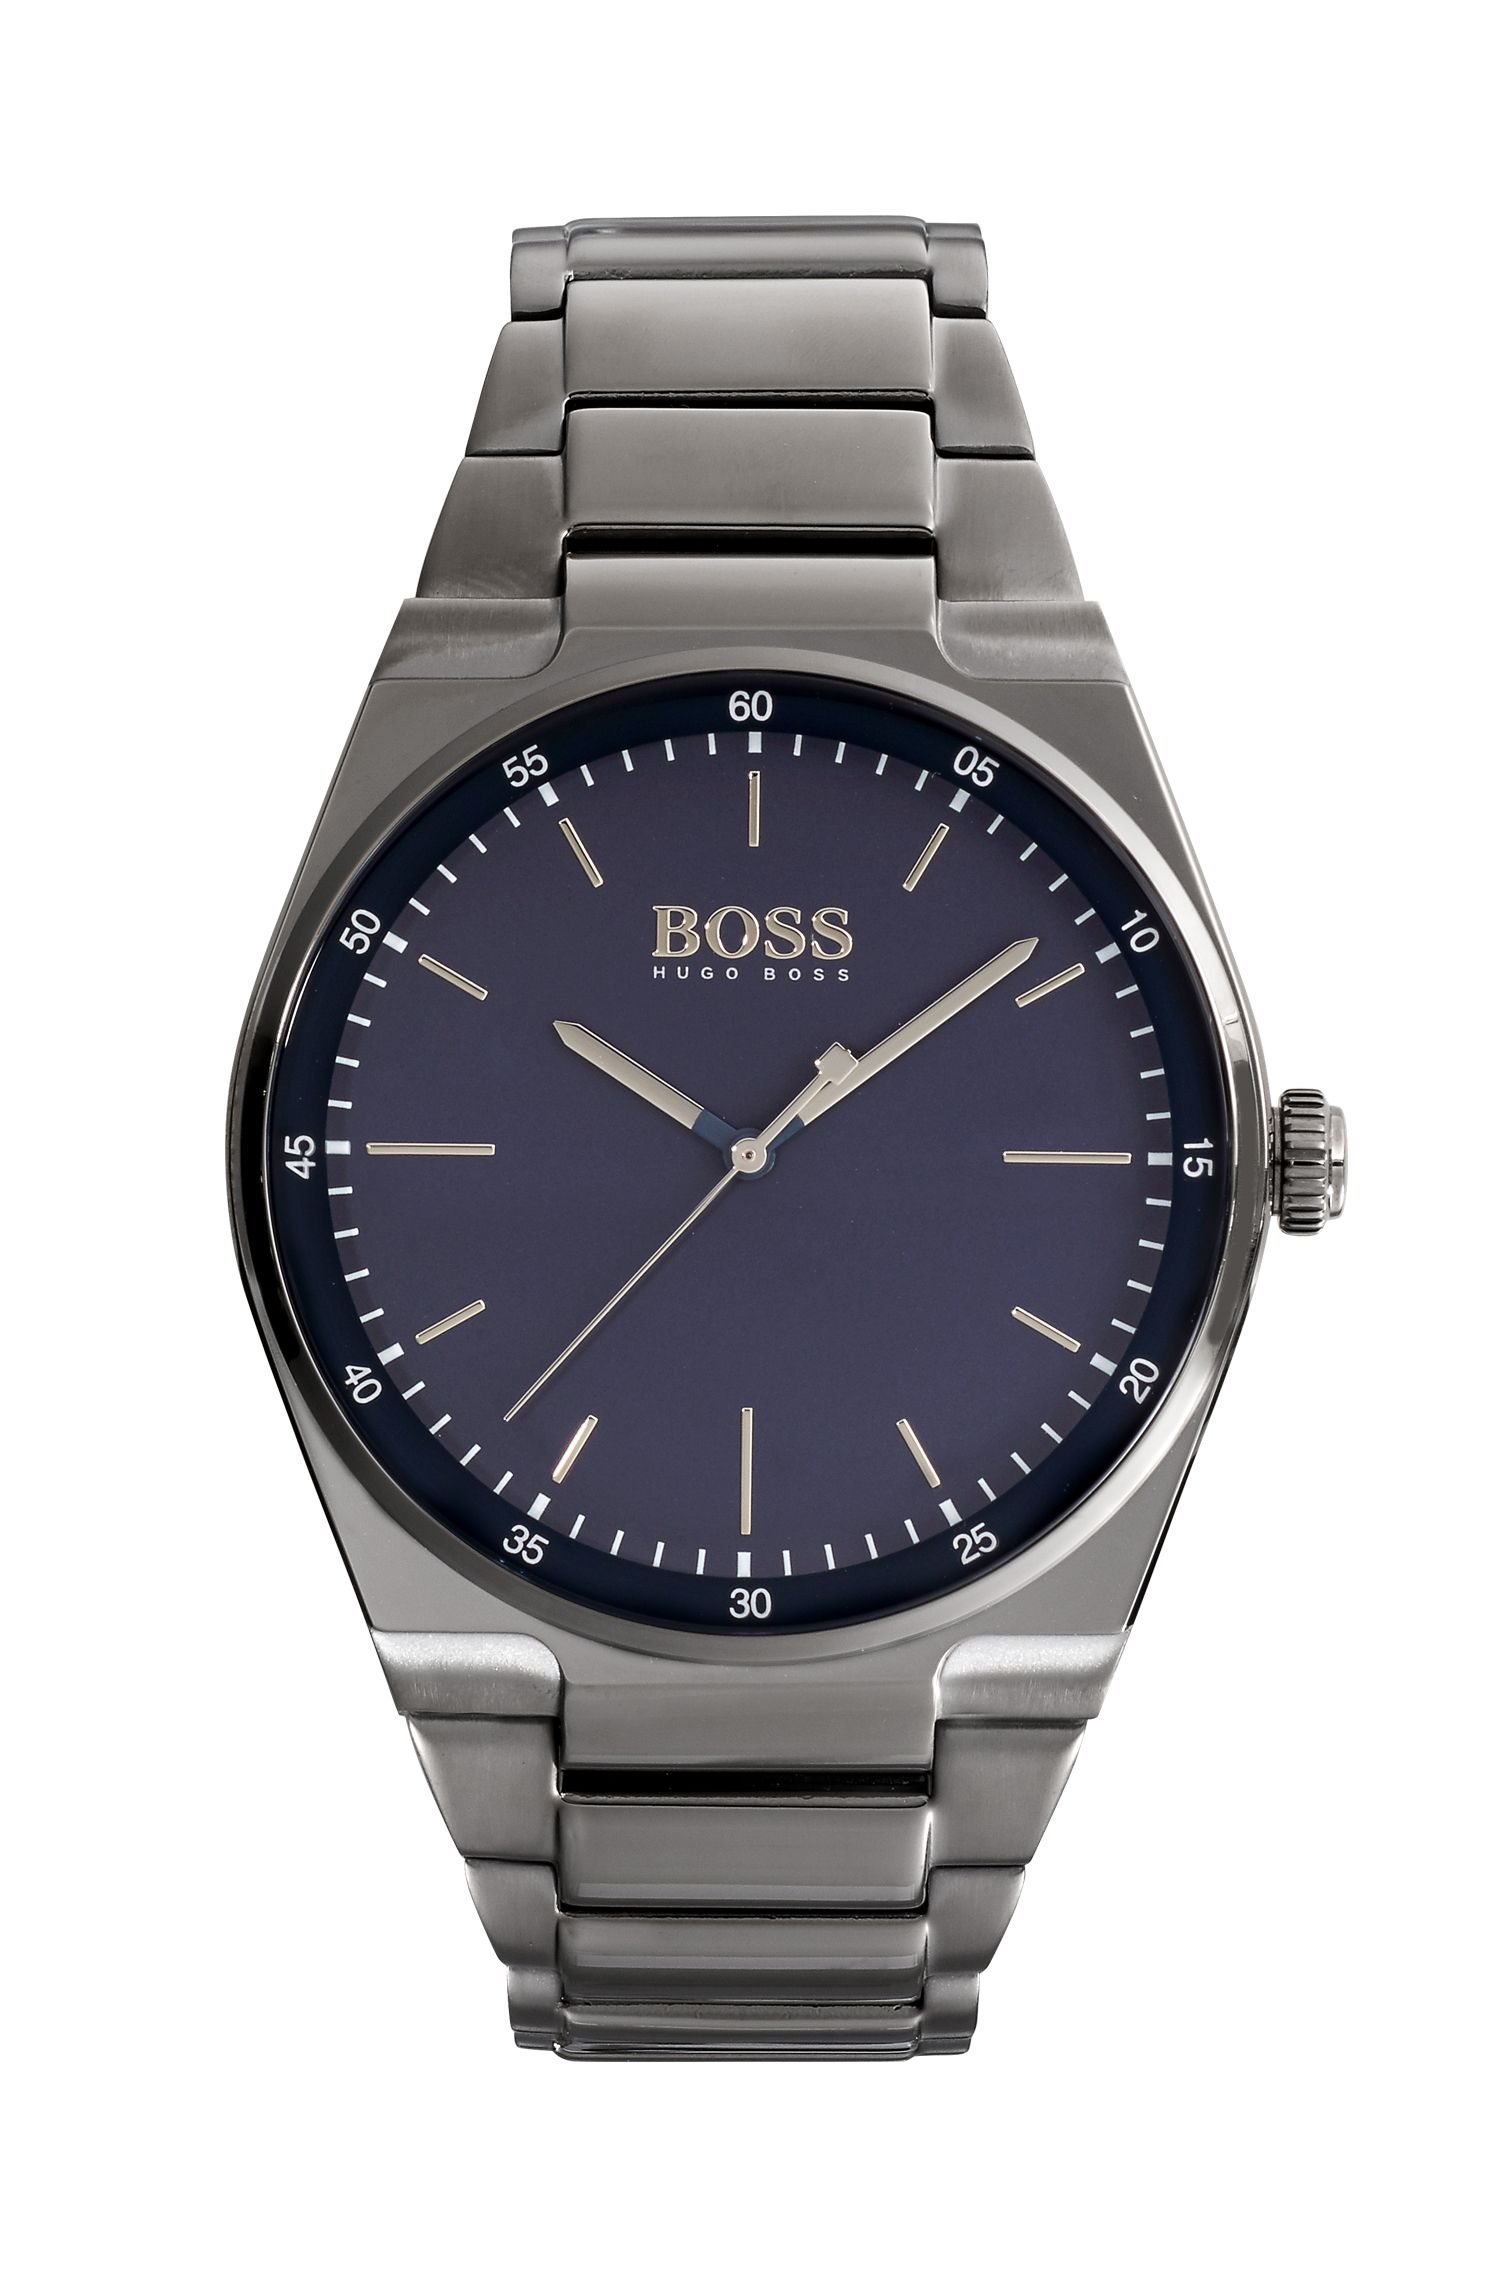 Blue Dial Watch With Grey Bracelet | Magnitude